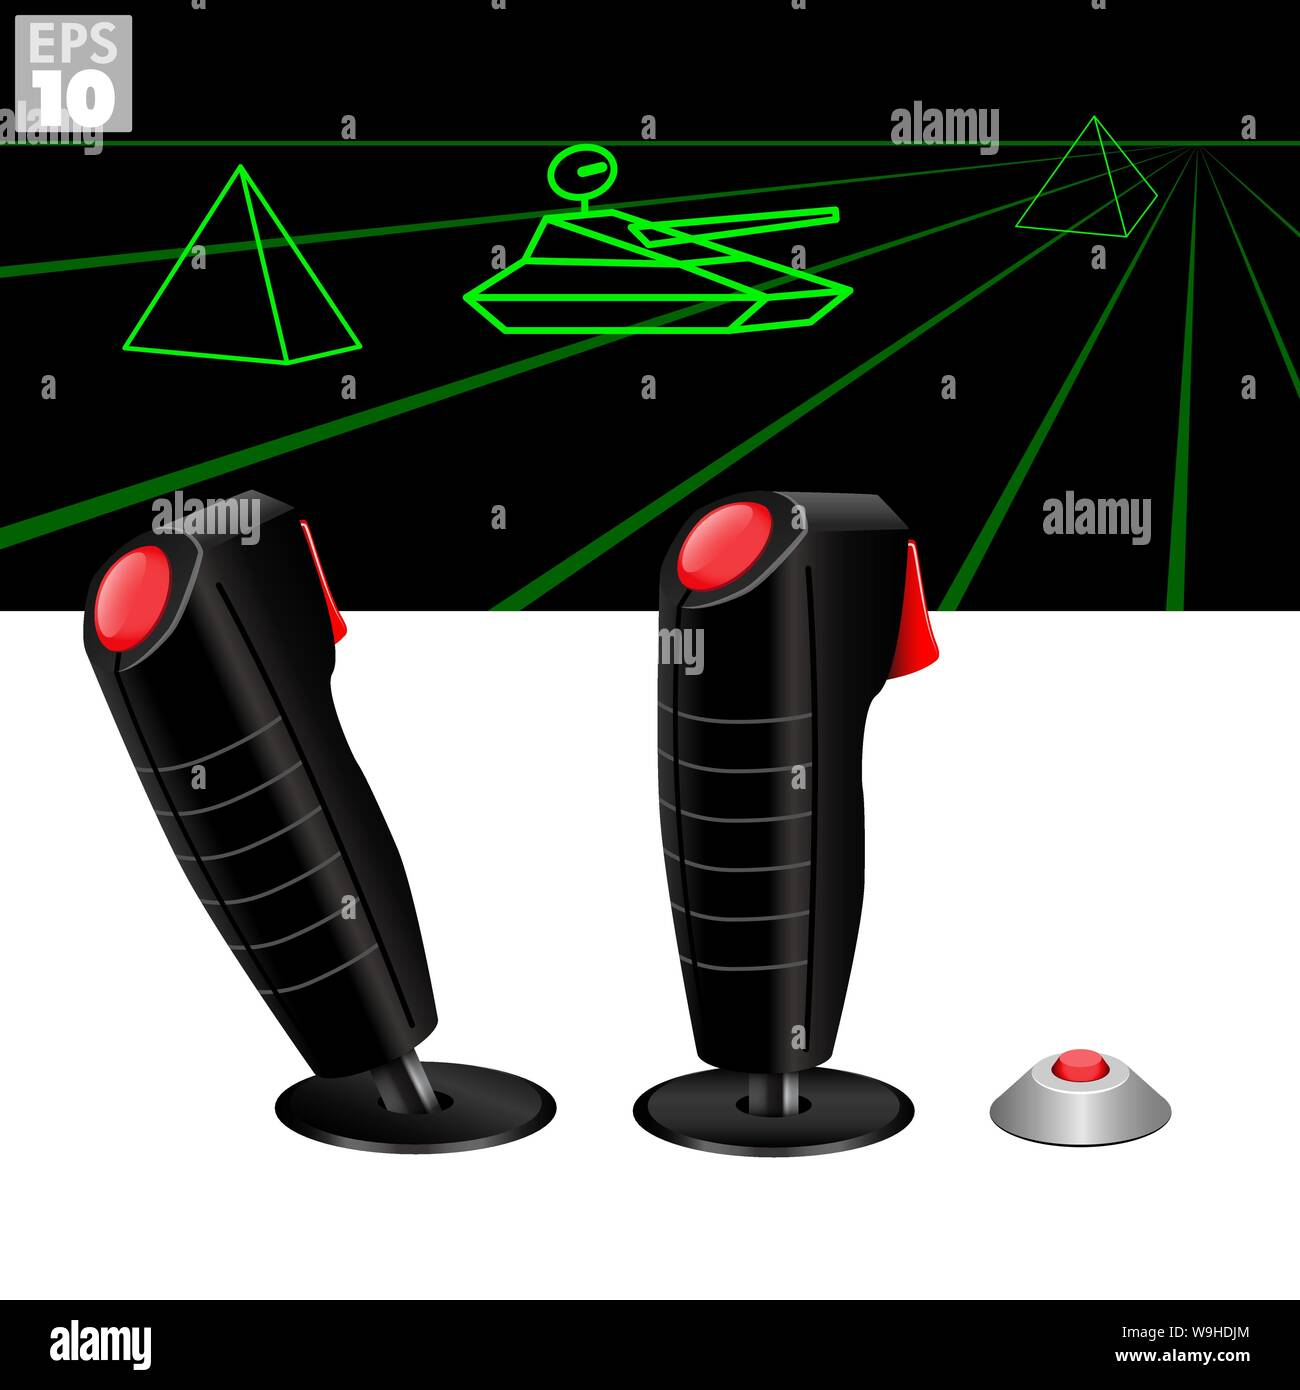 Dual joysticks or flightsticks with top fire and trigger fire button to control throttle and direction in classic arcade video games. Stock Vector